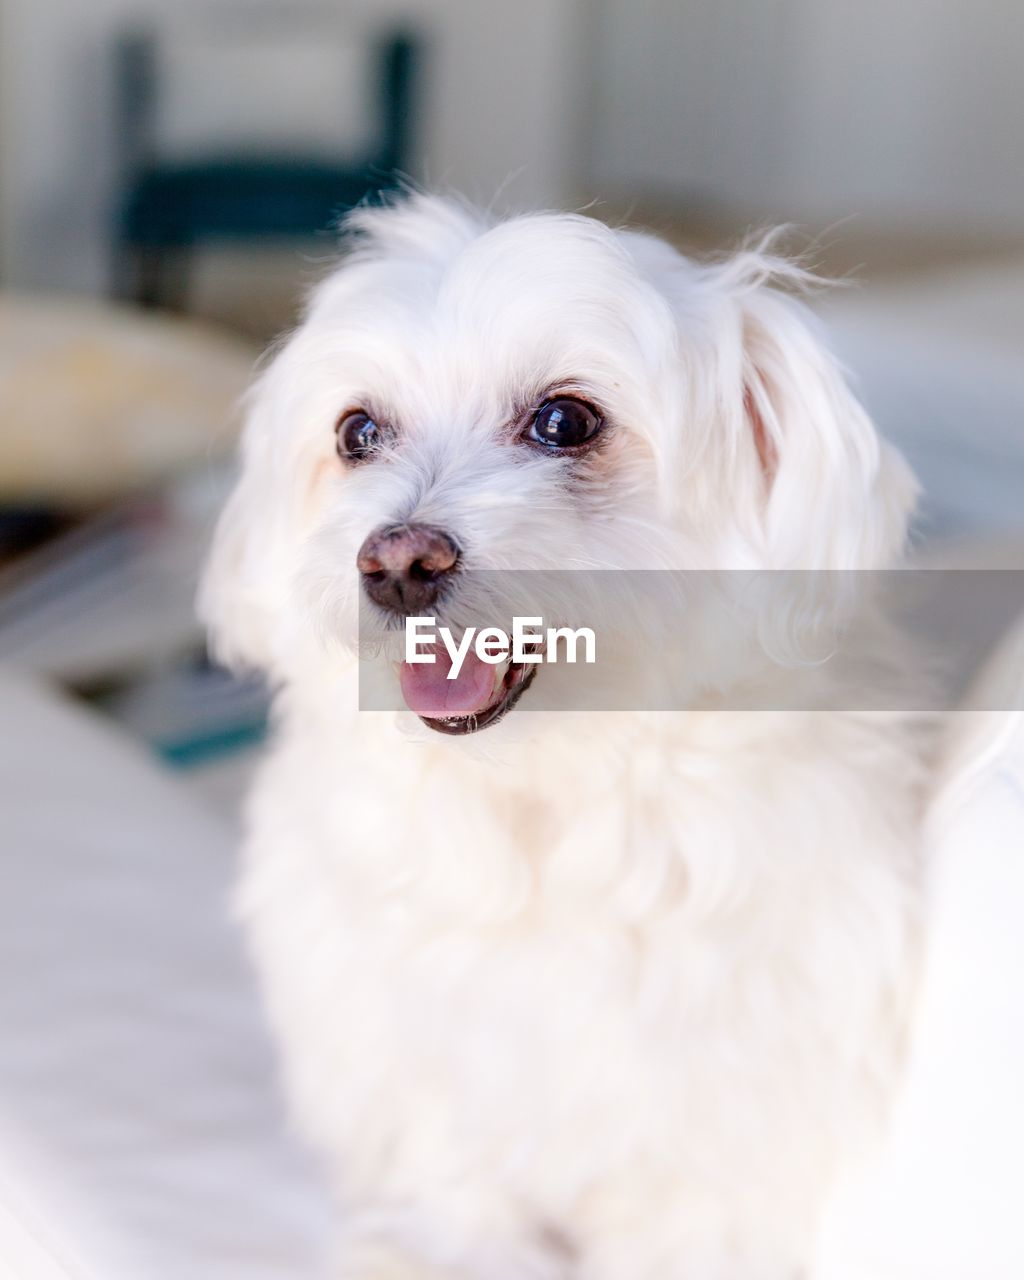 pets, domestic, one animal, dog, domestic animals, mammal, canine, animal, animal themes, vertebrate, white color, looking at camera, portrait, focus on foreground, no people, animal hair, animal body part, small, indoors, cute, animal head, mouth open, shih tzu